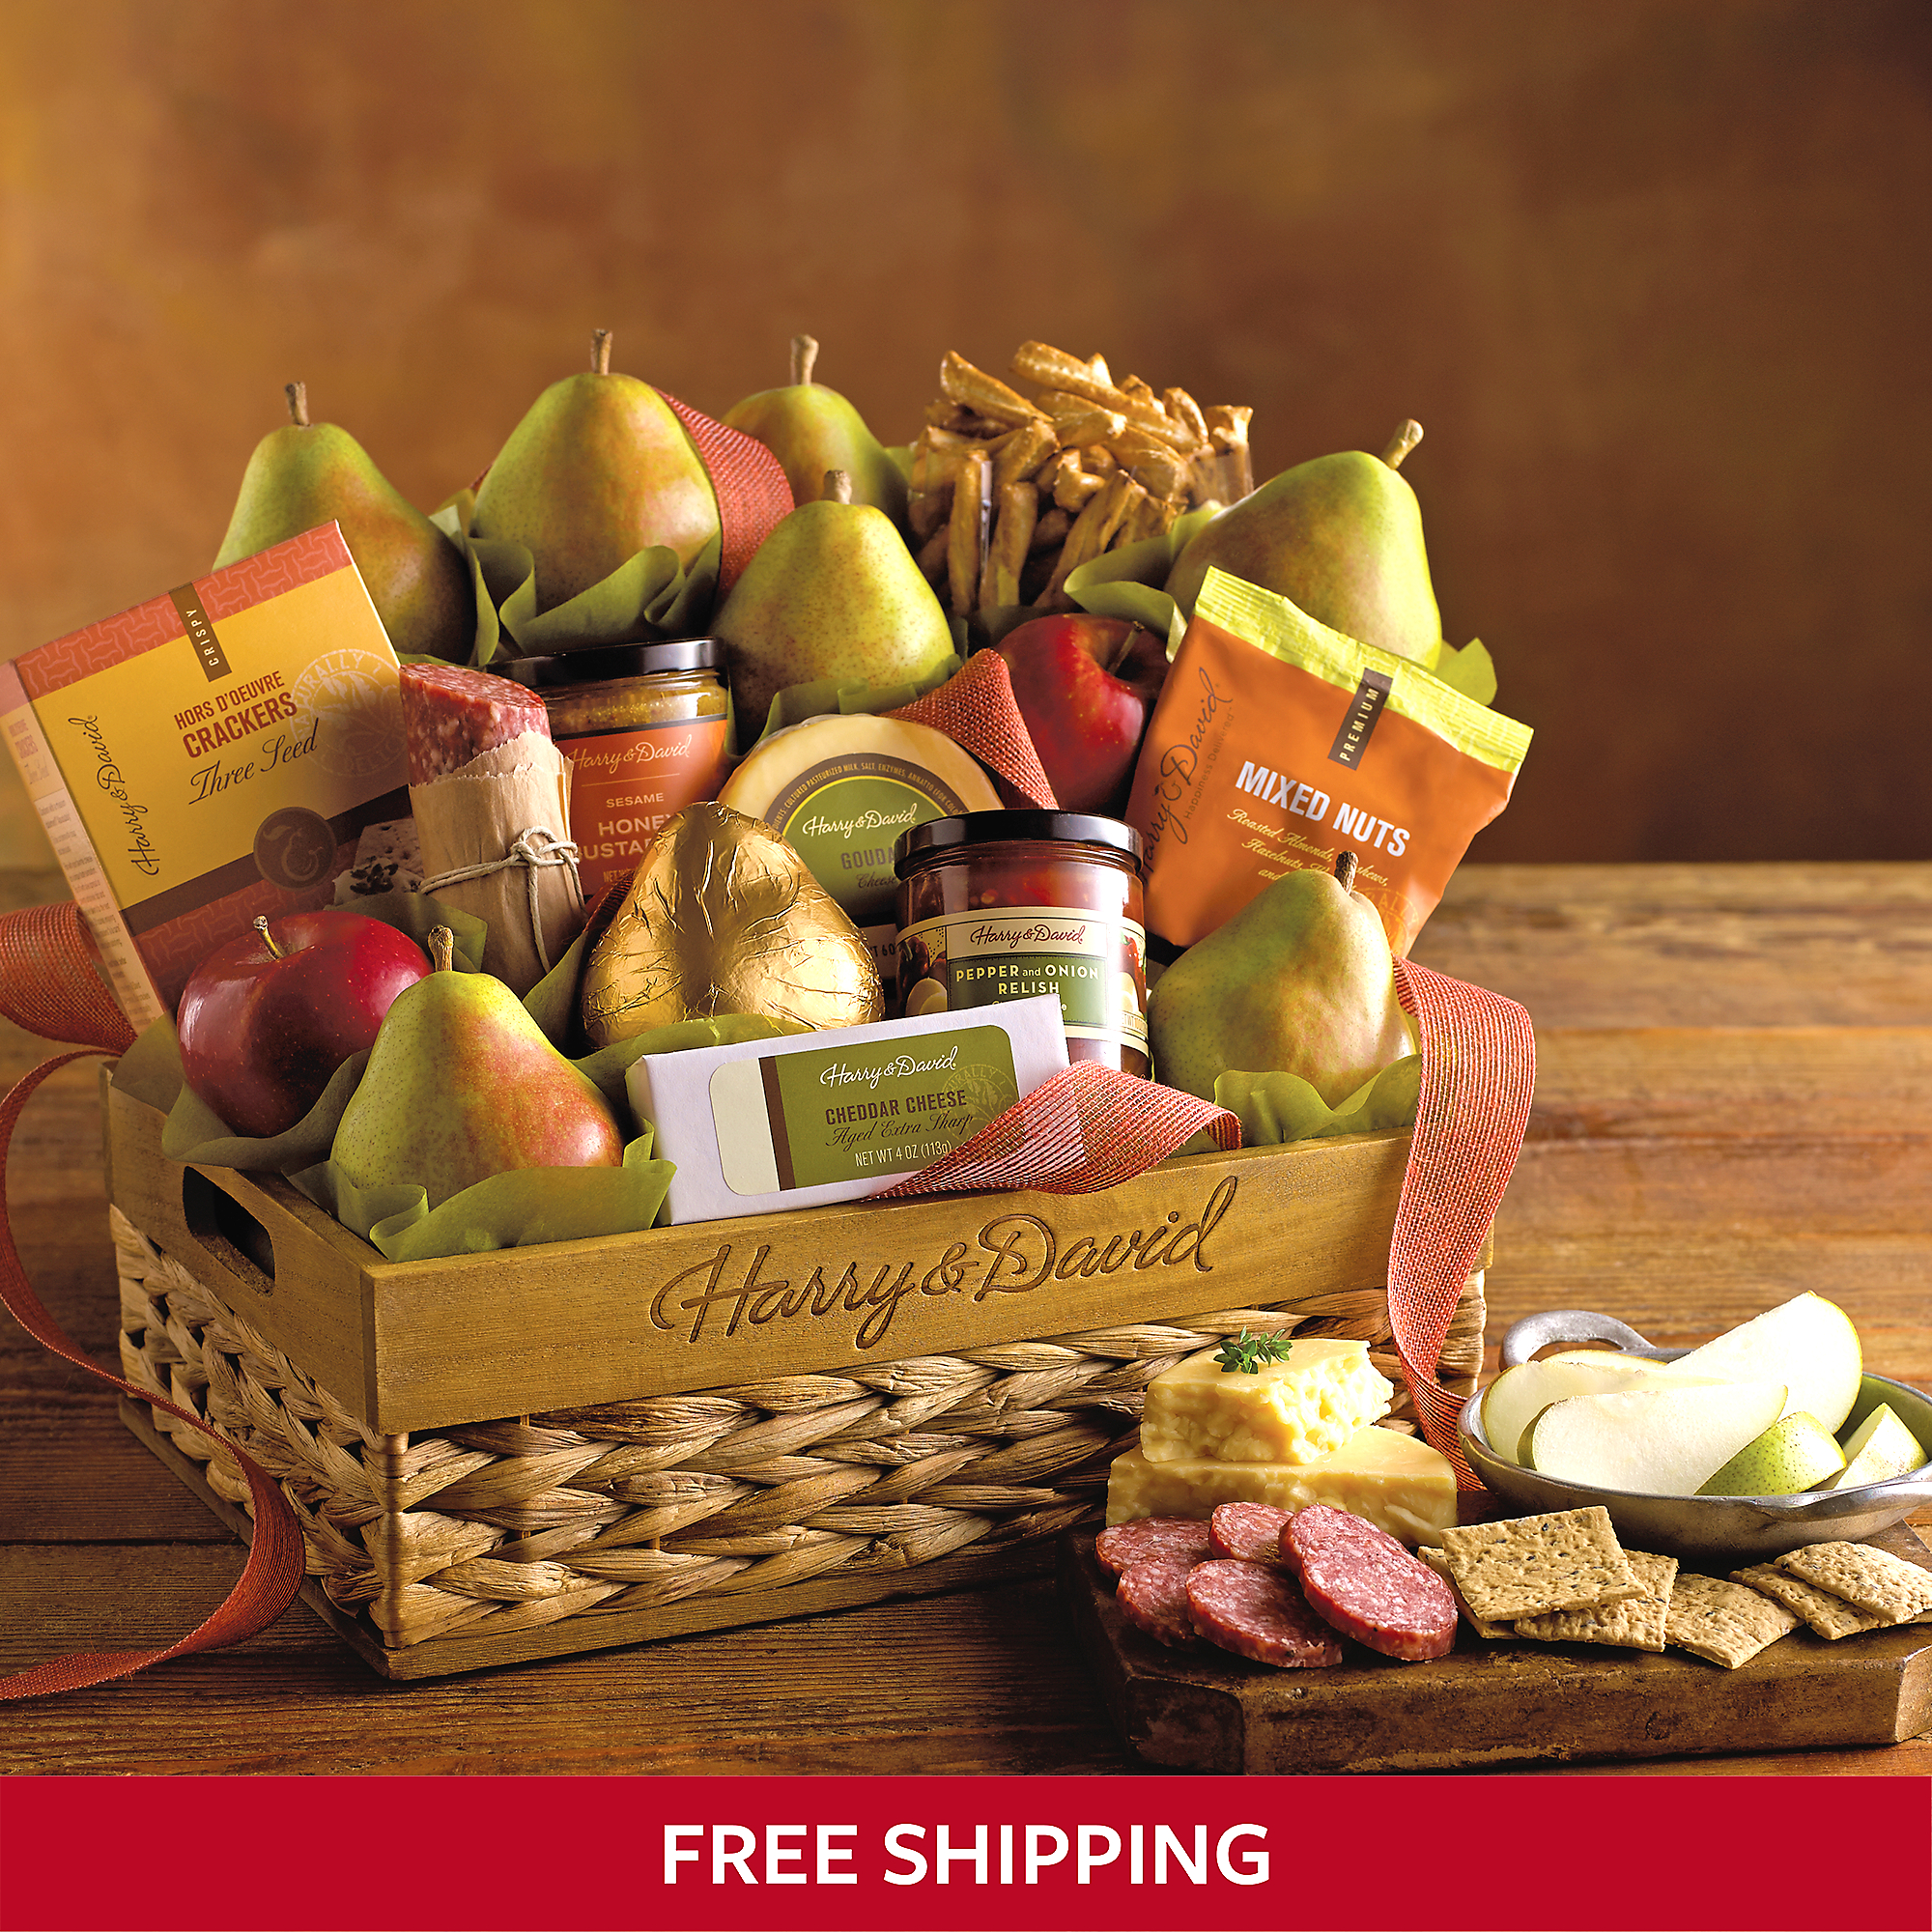 Grand Signature Gift Basket Mixed Snacks Fruit Baskets